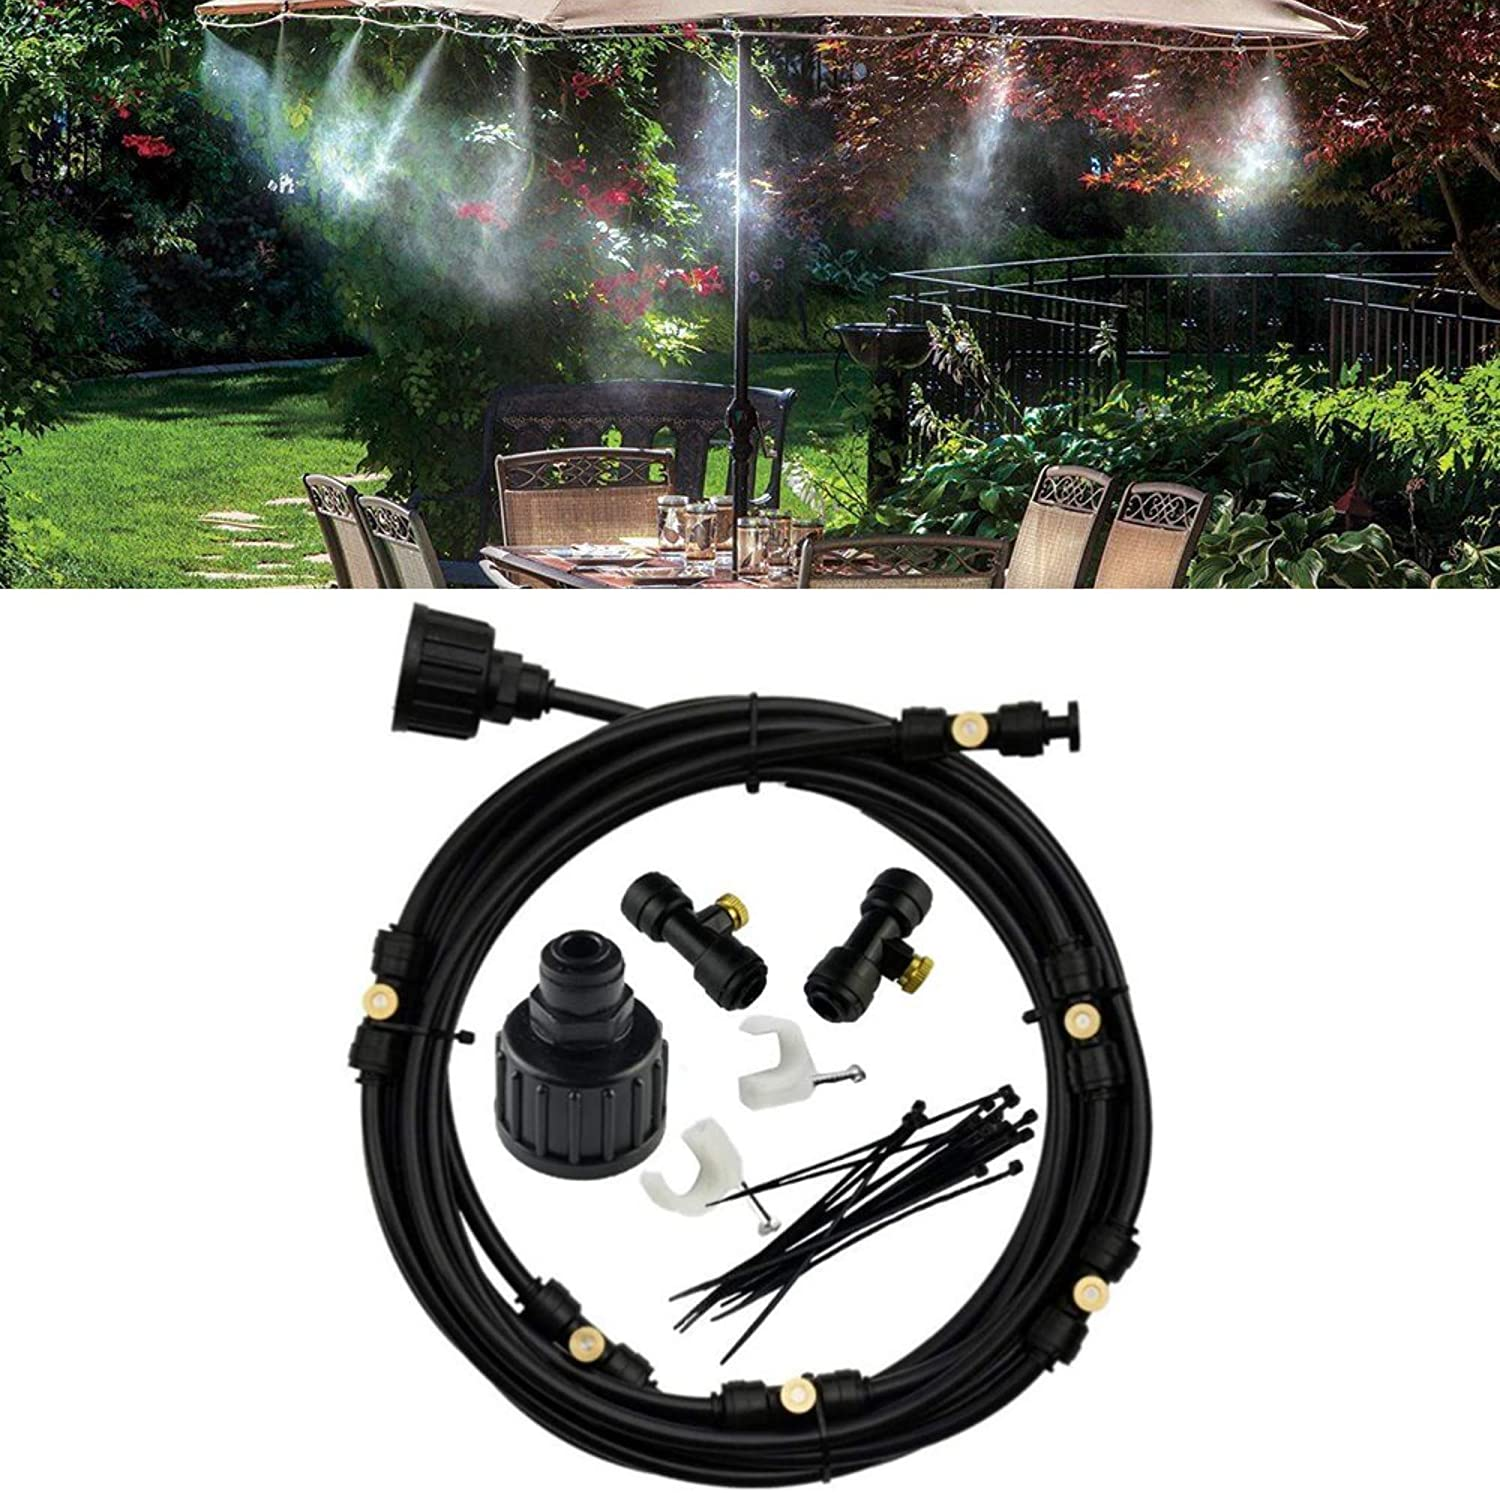 """Espak Outdoor Preassembled Misting Cooling System - 10m (38.8 Feet) Patio Mister 3/4"""" Adapter 10 Brass Sprayers Garden Cooling System"""